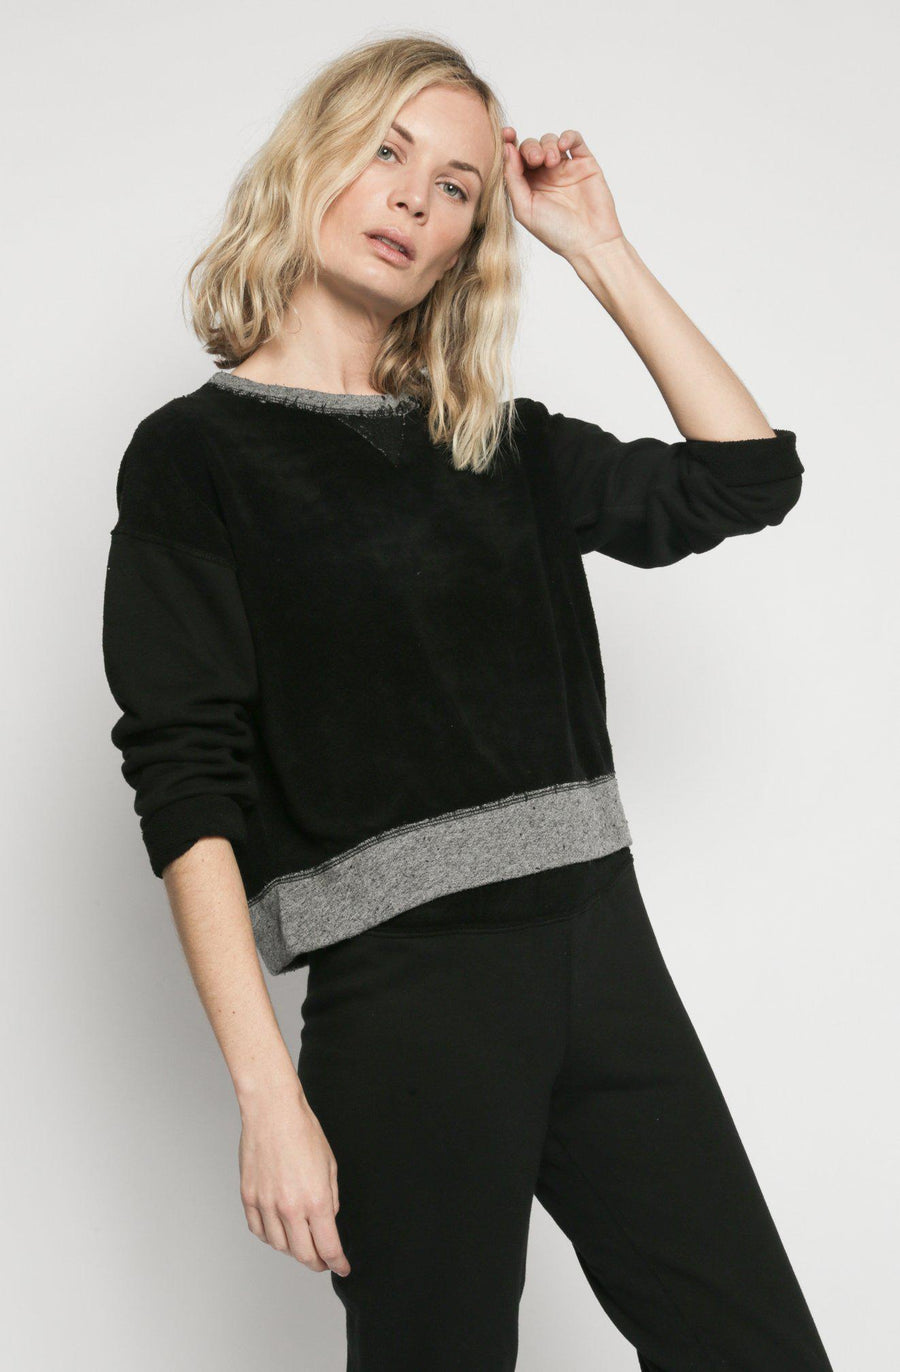 Patch Isabel Sweatshirt - Black